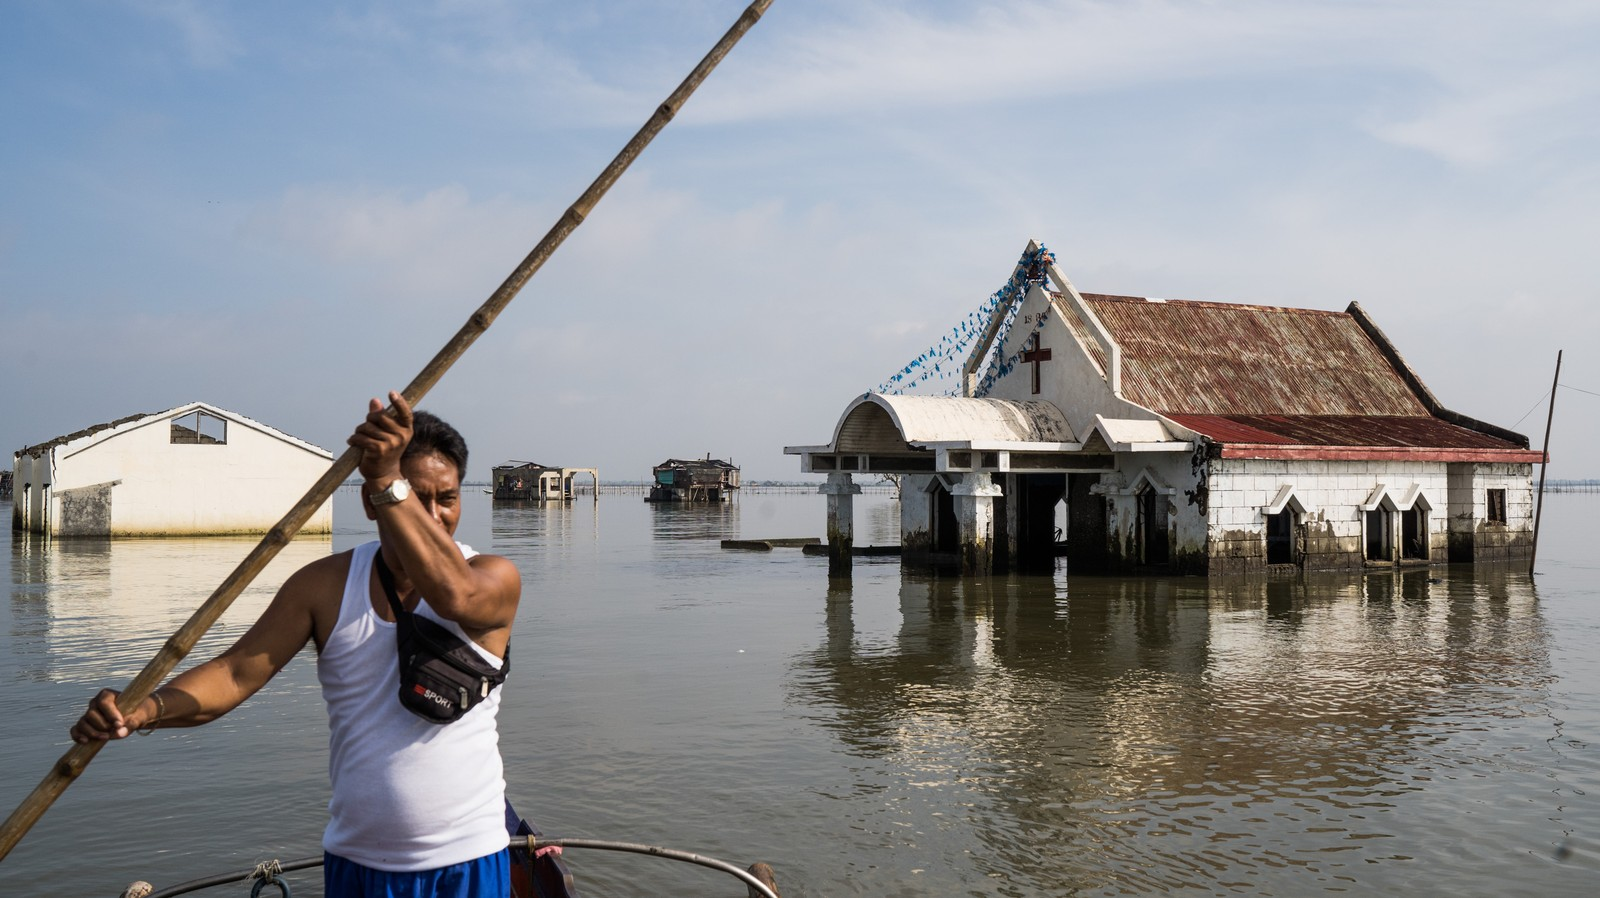 Houses on Stilts, Boats as Transport: What it's Like Living in This Sinking Philippine Town